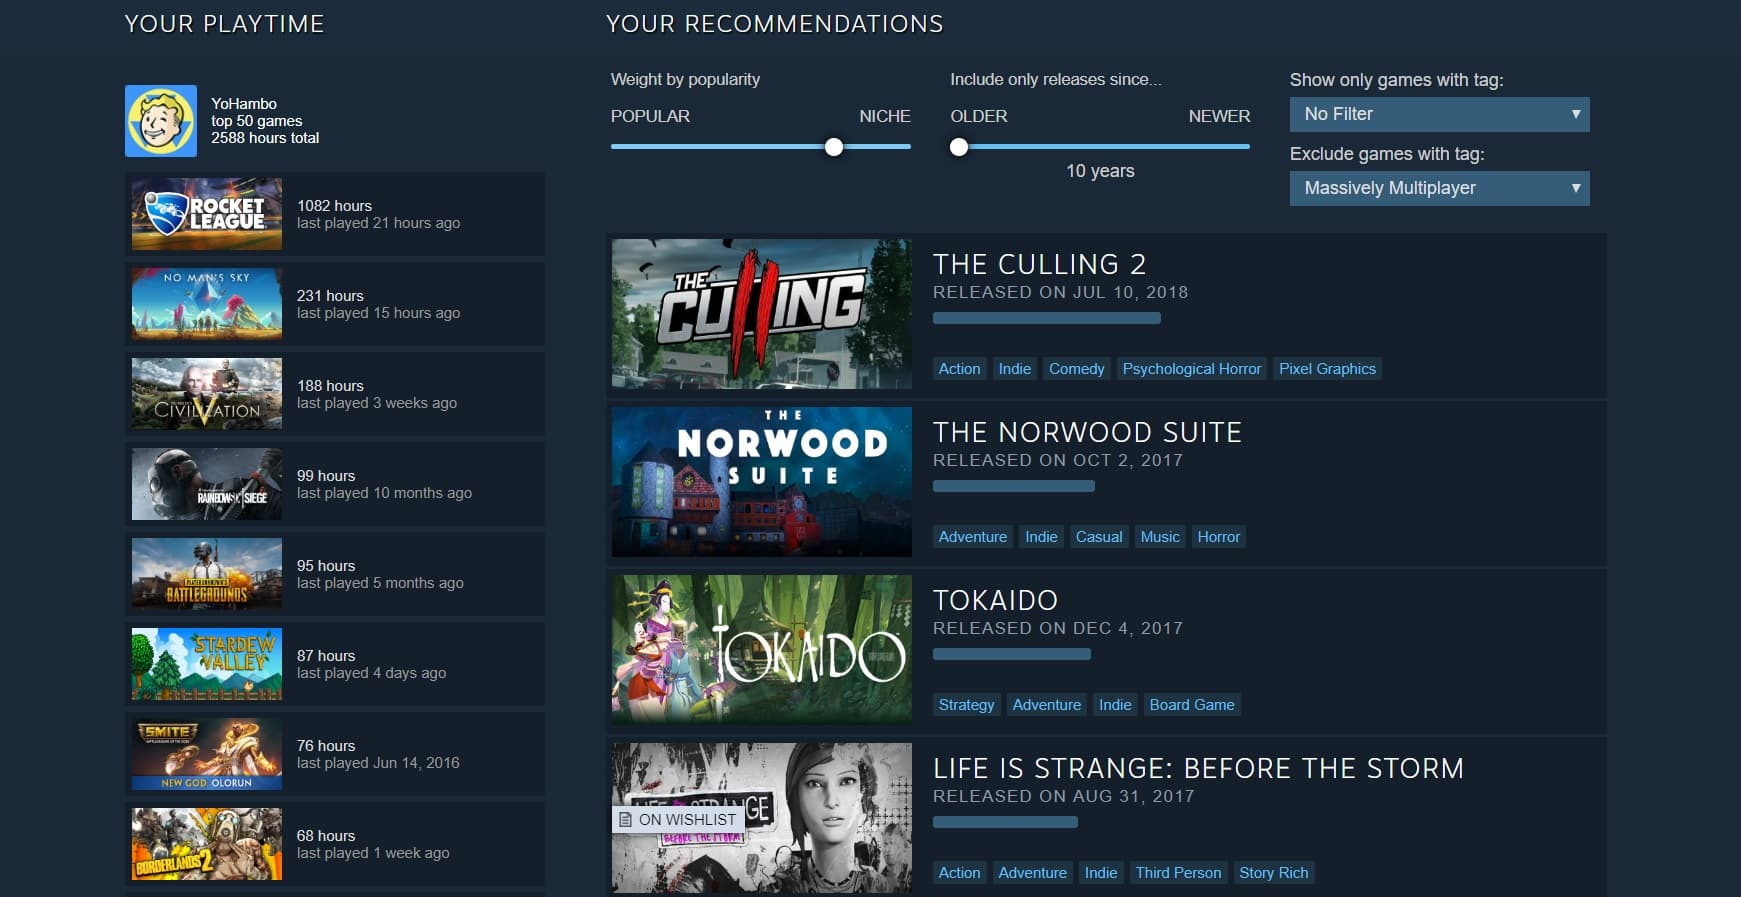 steam interactive recommender tool